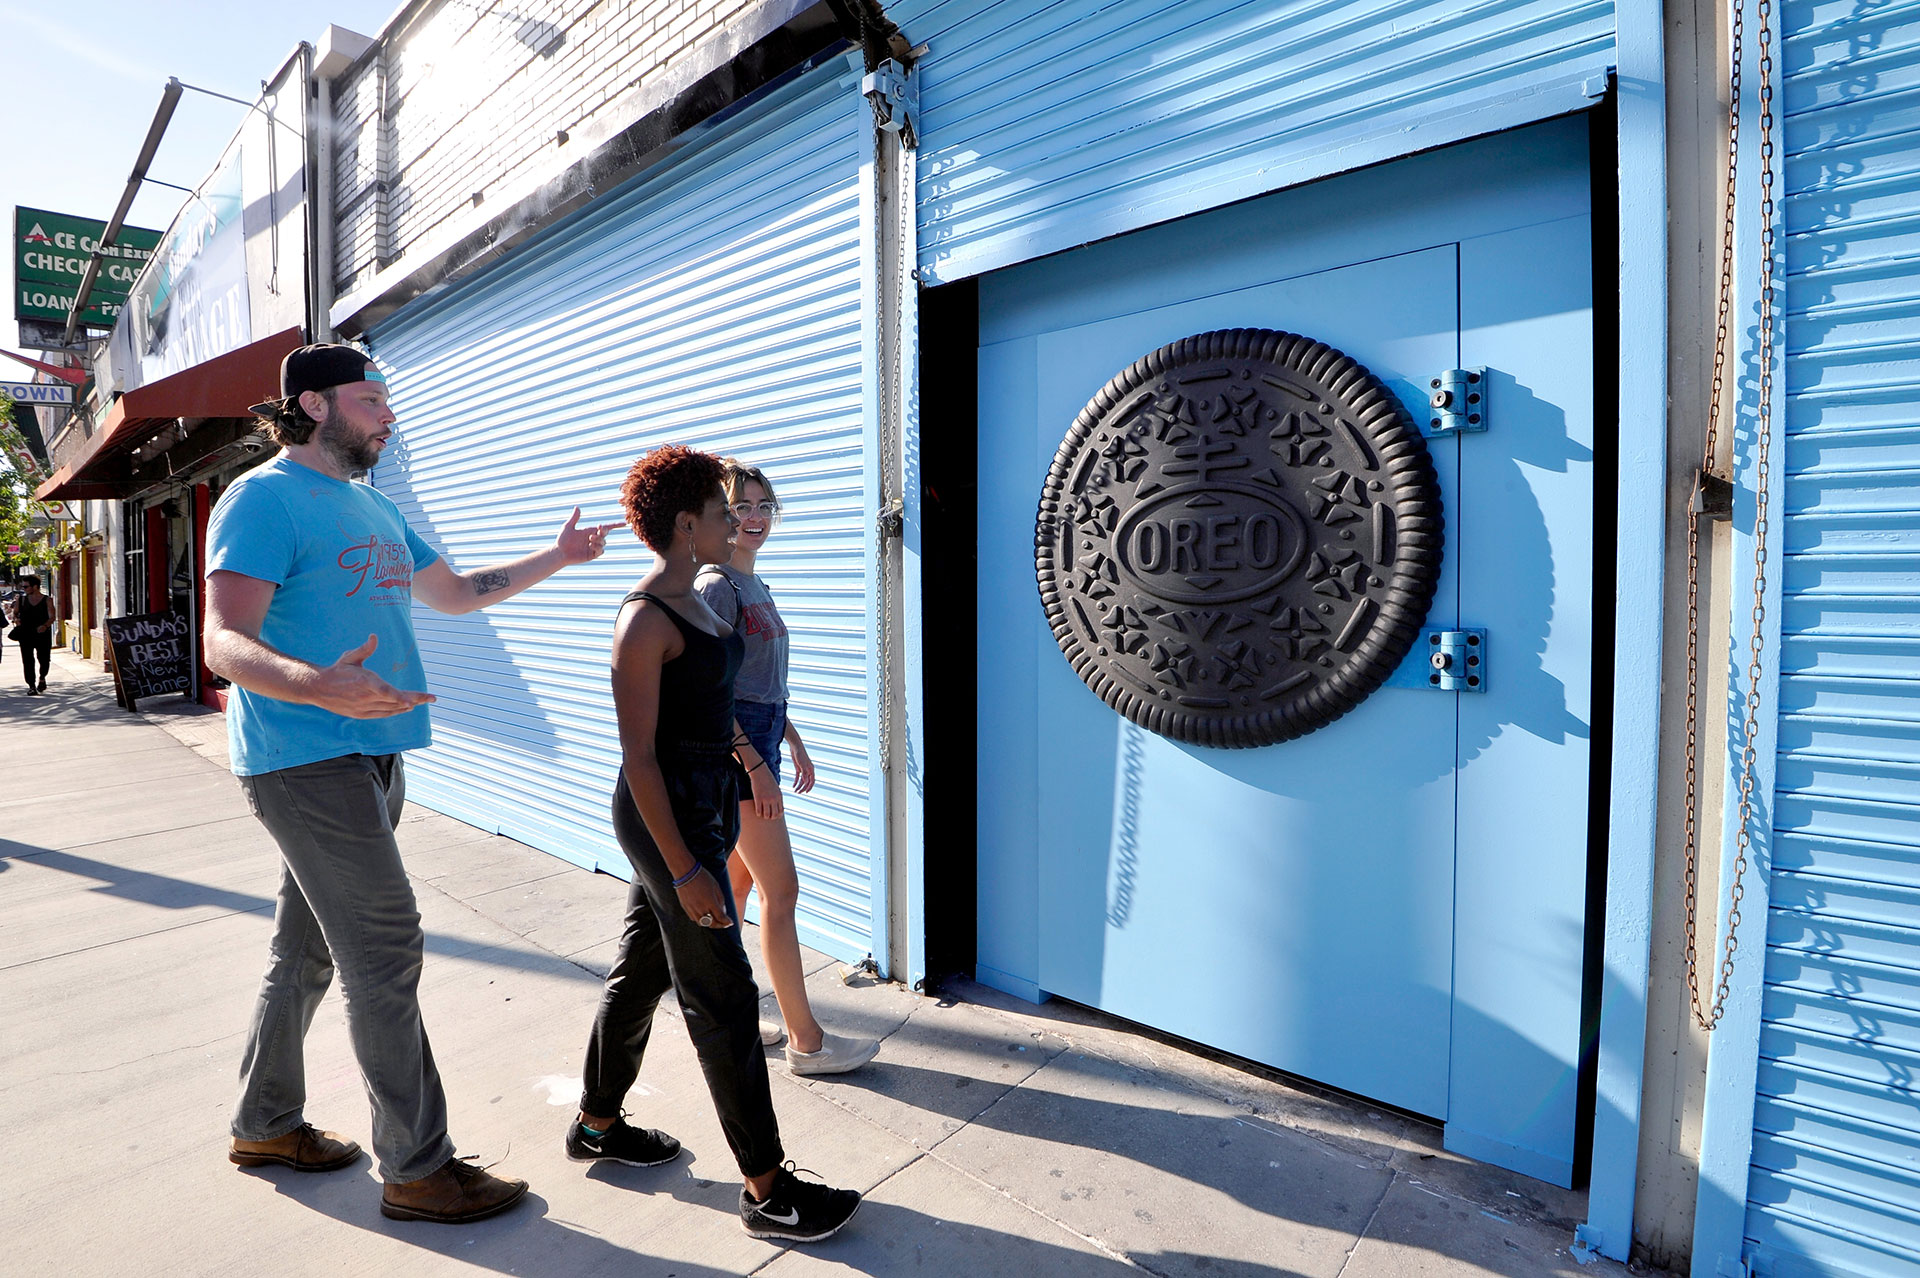 See the Dreamland Behind This Mysterious Oreo Storefront in L.A.